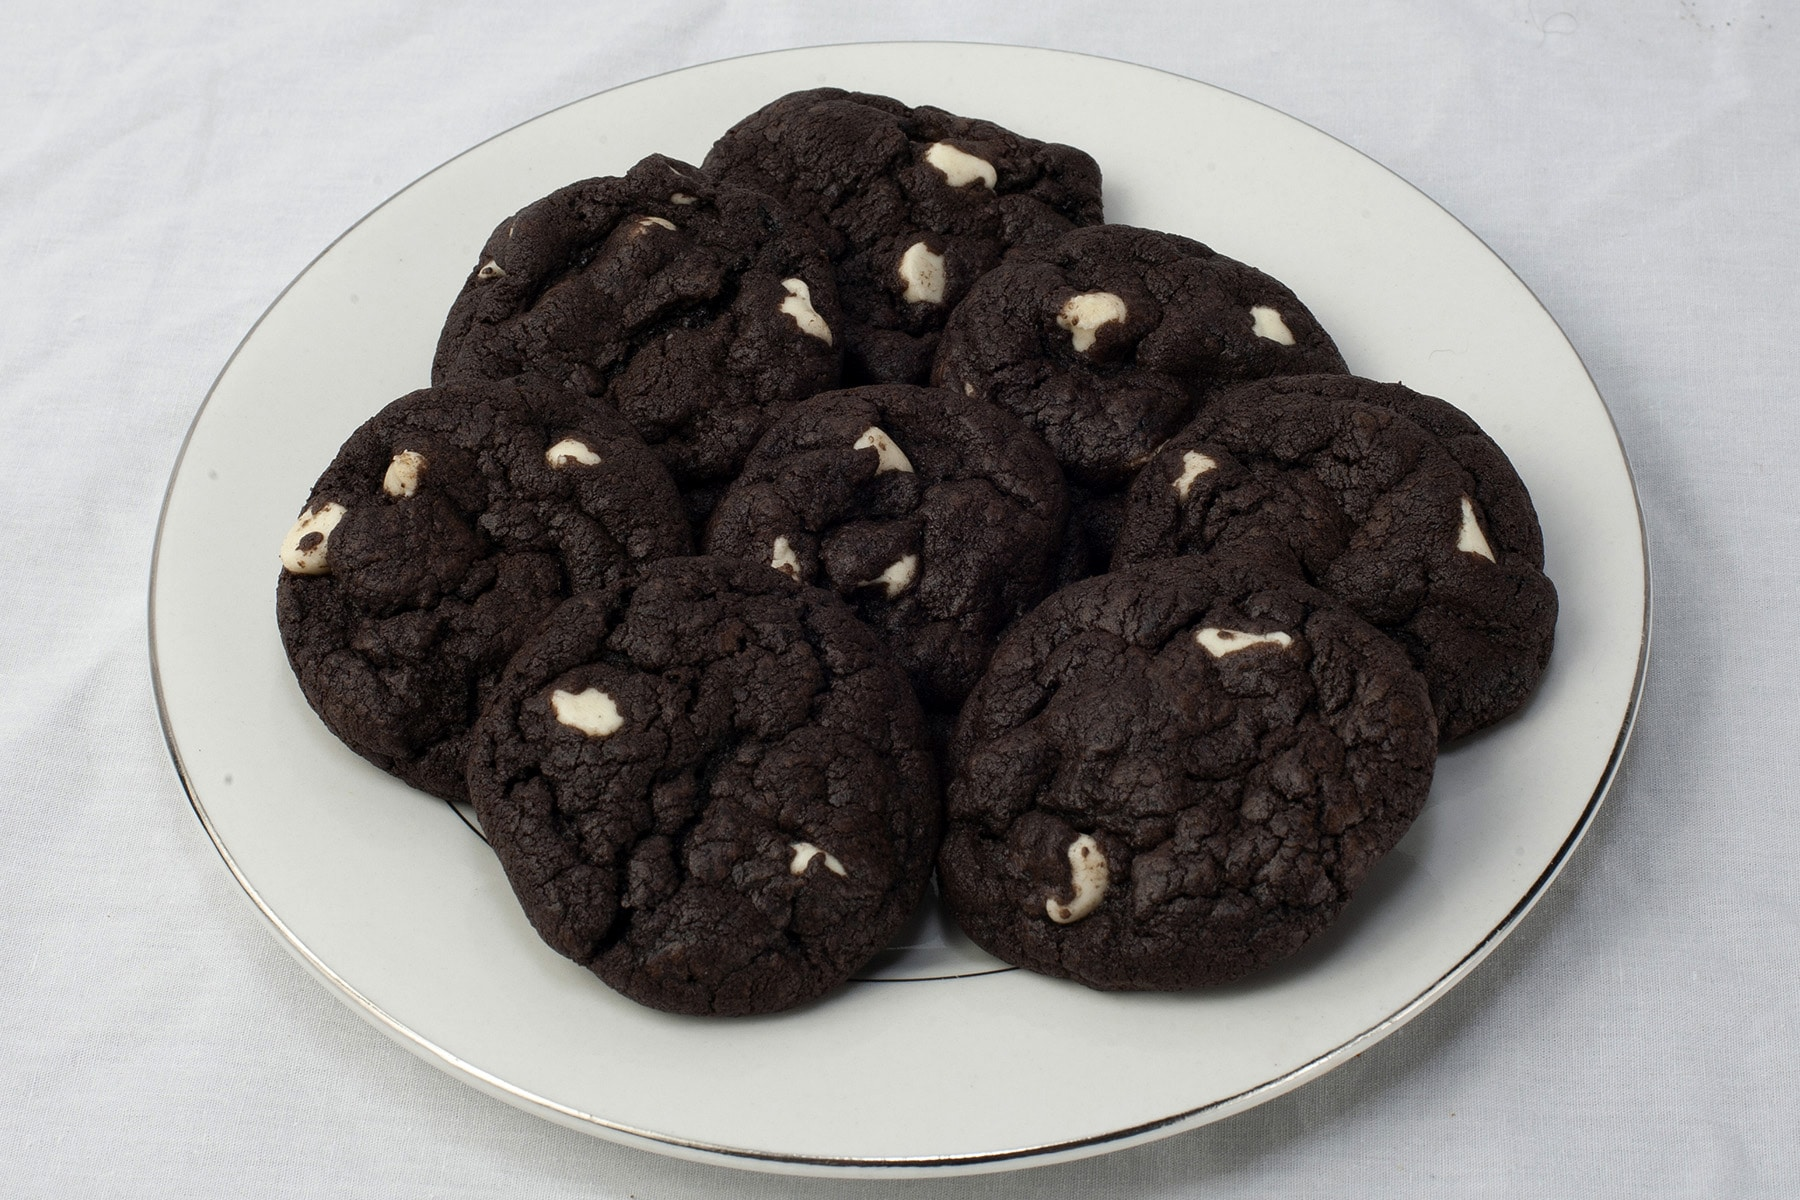 A plate of dark chocolate cookies with white chocolate chips.